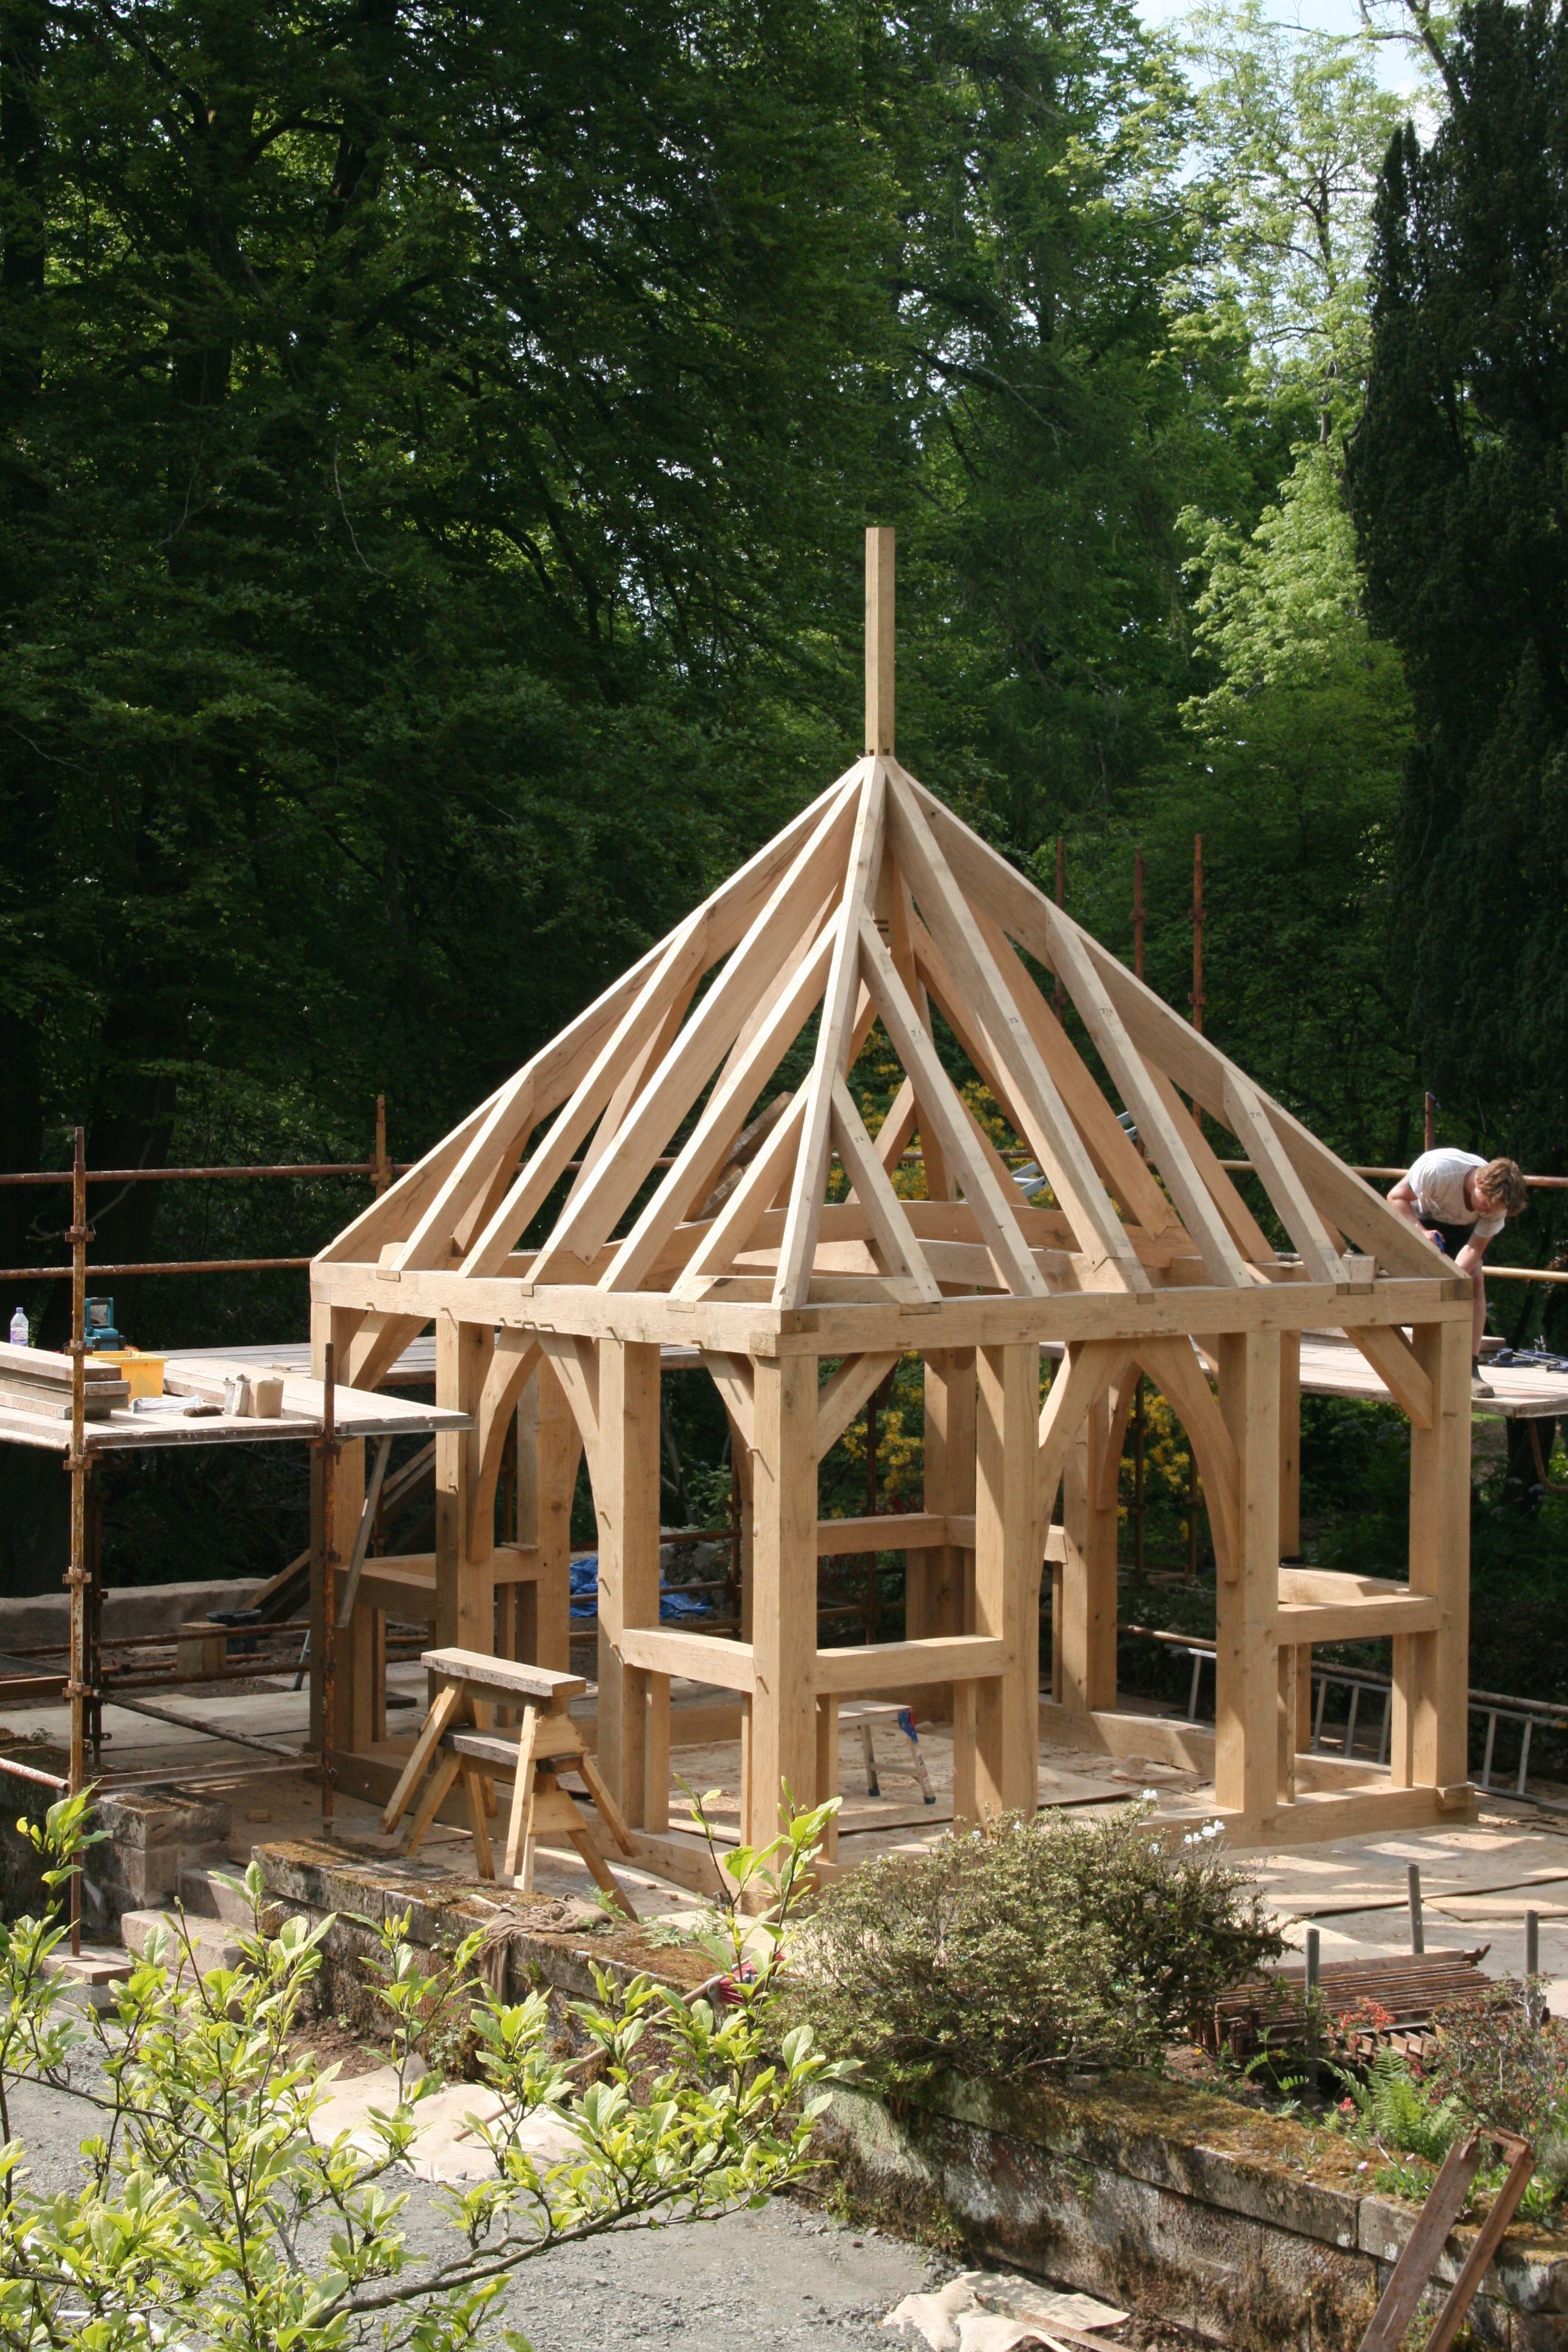 Holzverbindung Regal Post And Beam Construction Diy Outdoor Structures